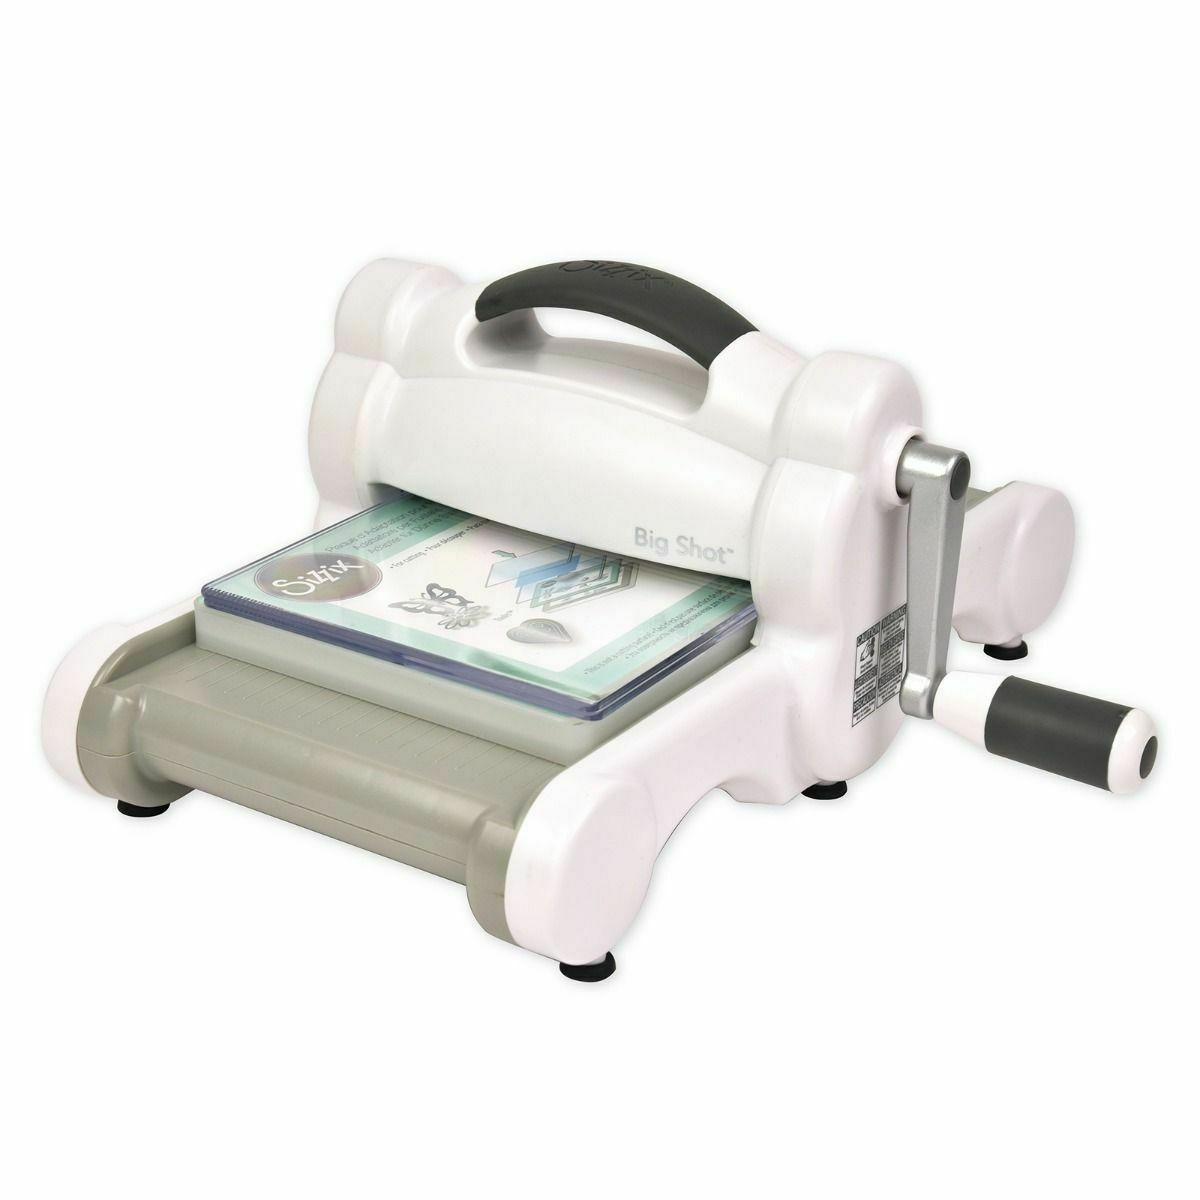 Sizzix Big Shot Maschine (White Gray) Stanzmaschine Prägemaschine